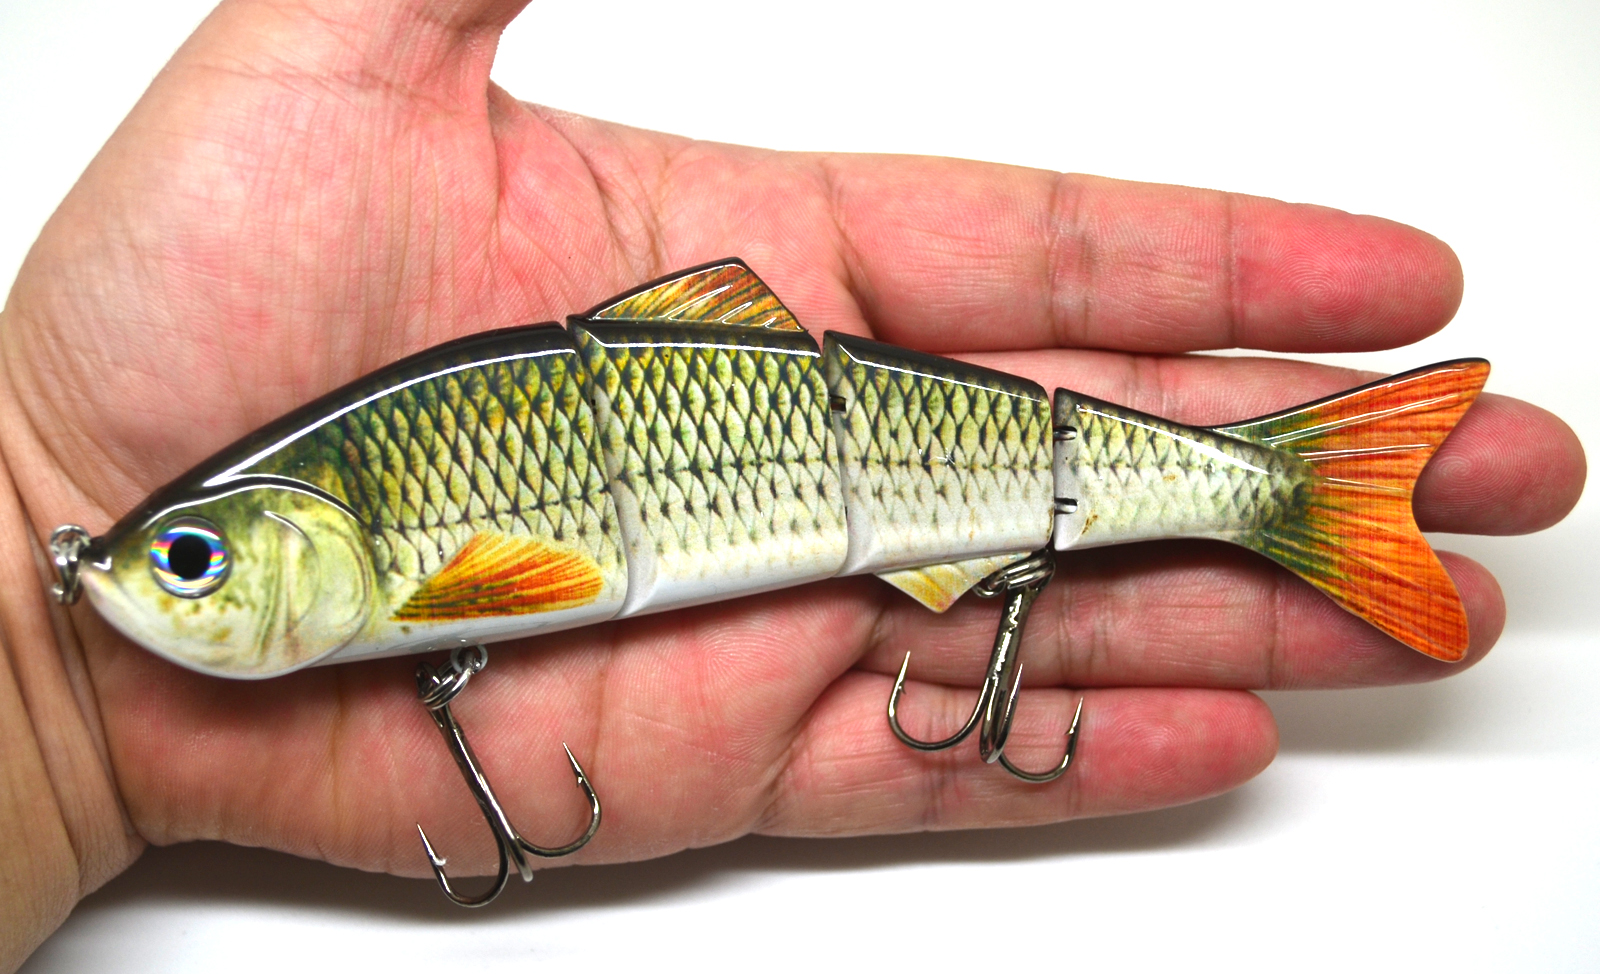 6 multi jointed fishing lure bait swimbait life like shad for Striper fish bait